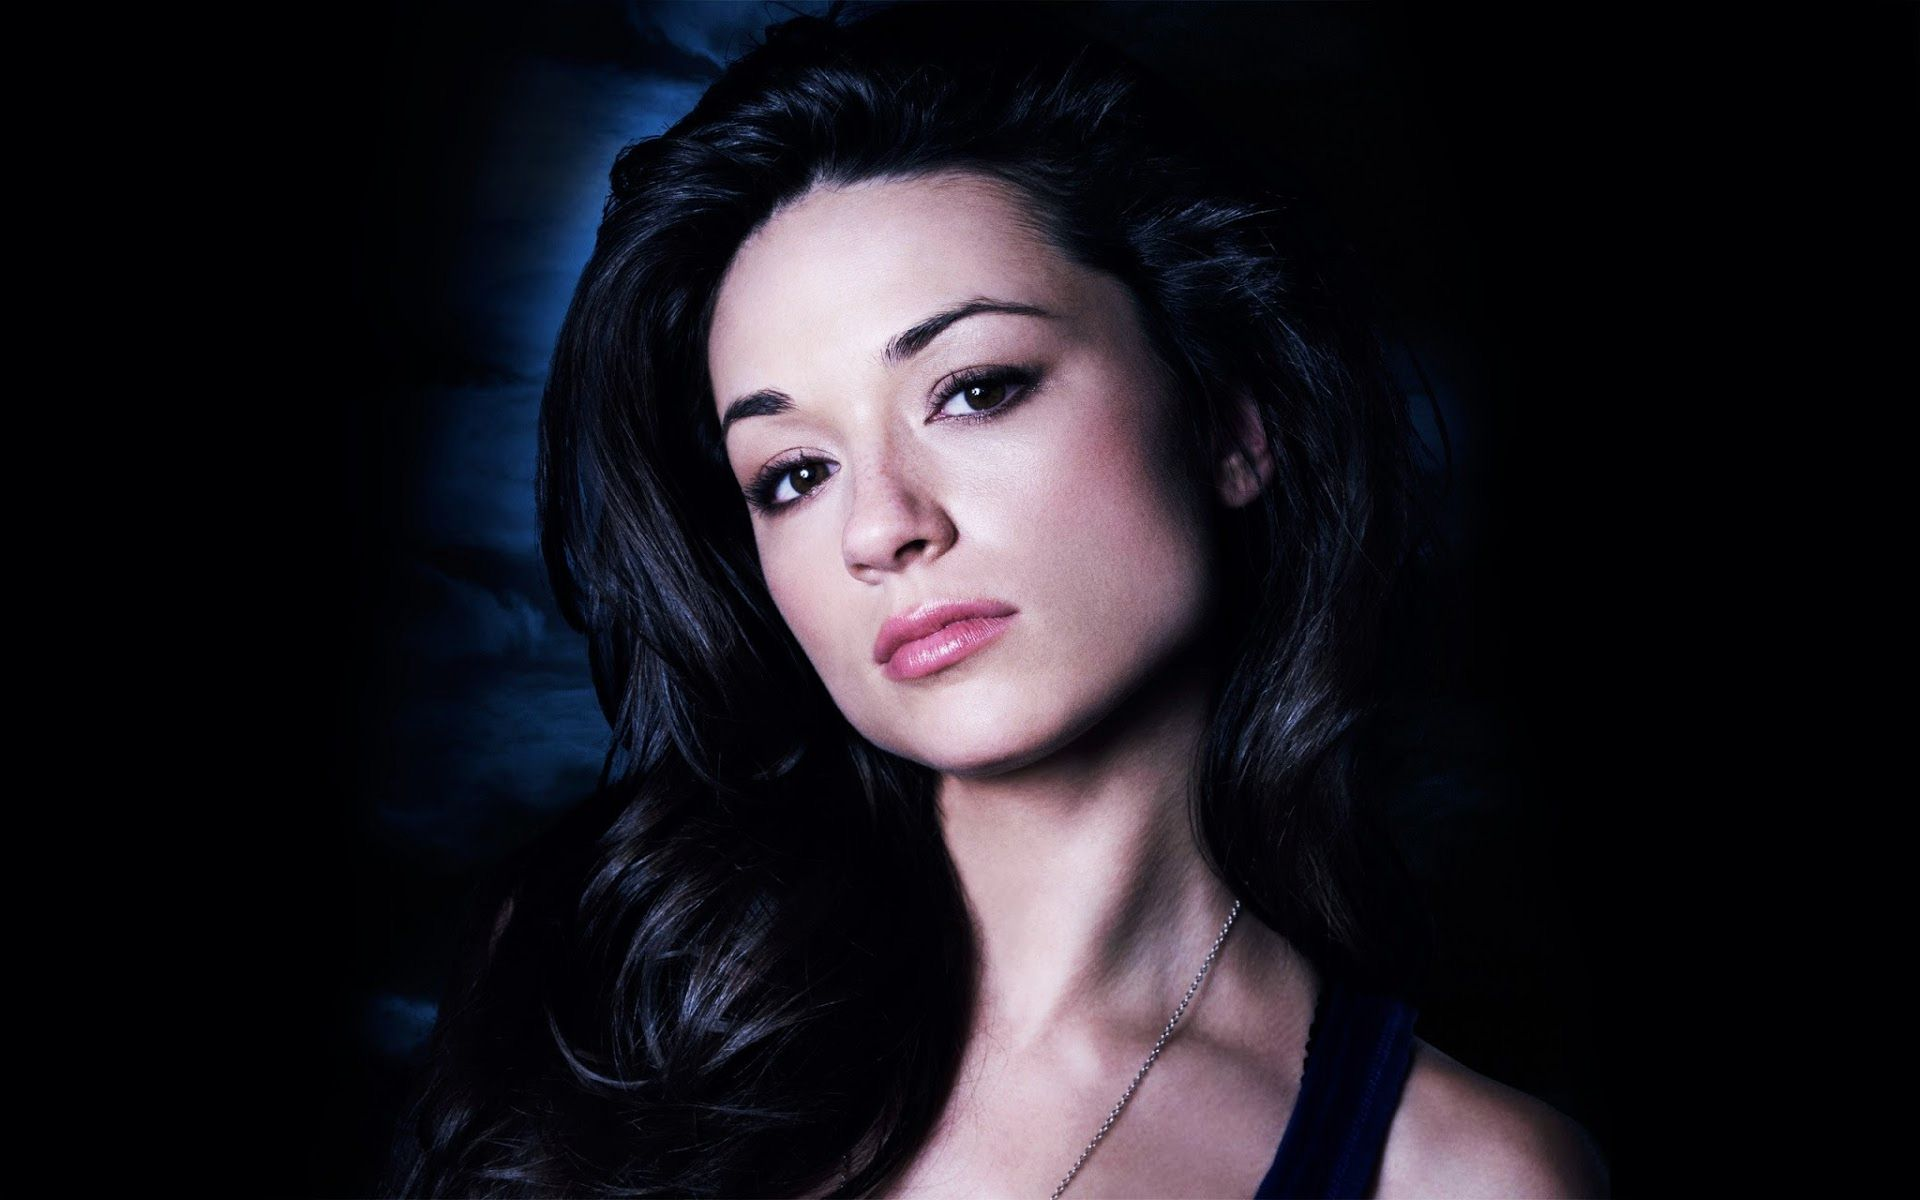 crystal-reed-wallpaper